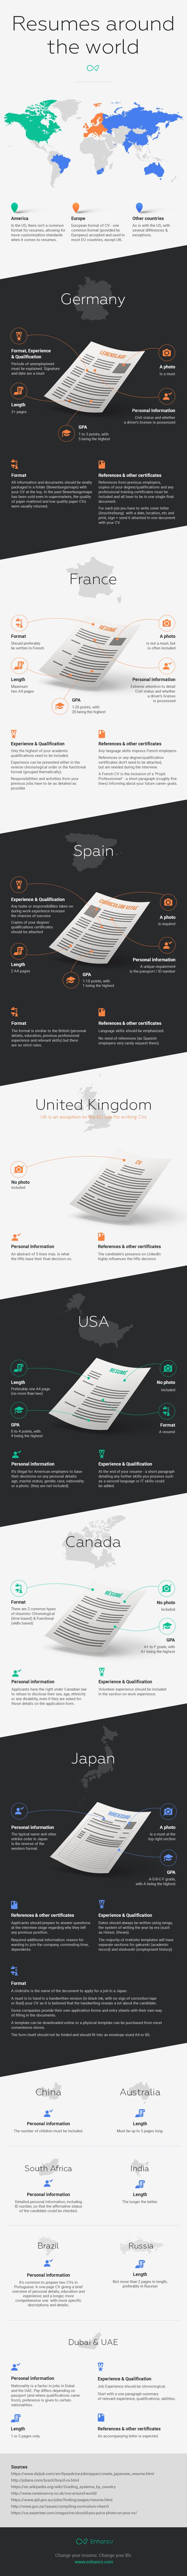 Infografik - Resumes around the world by Enhancv